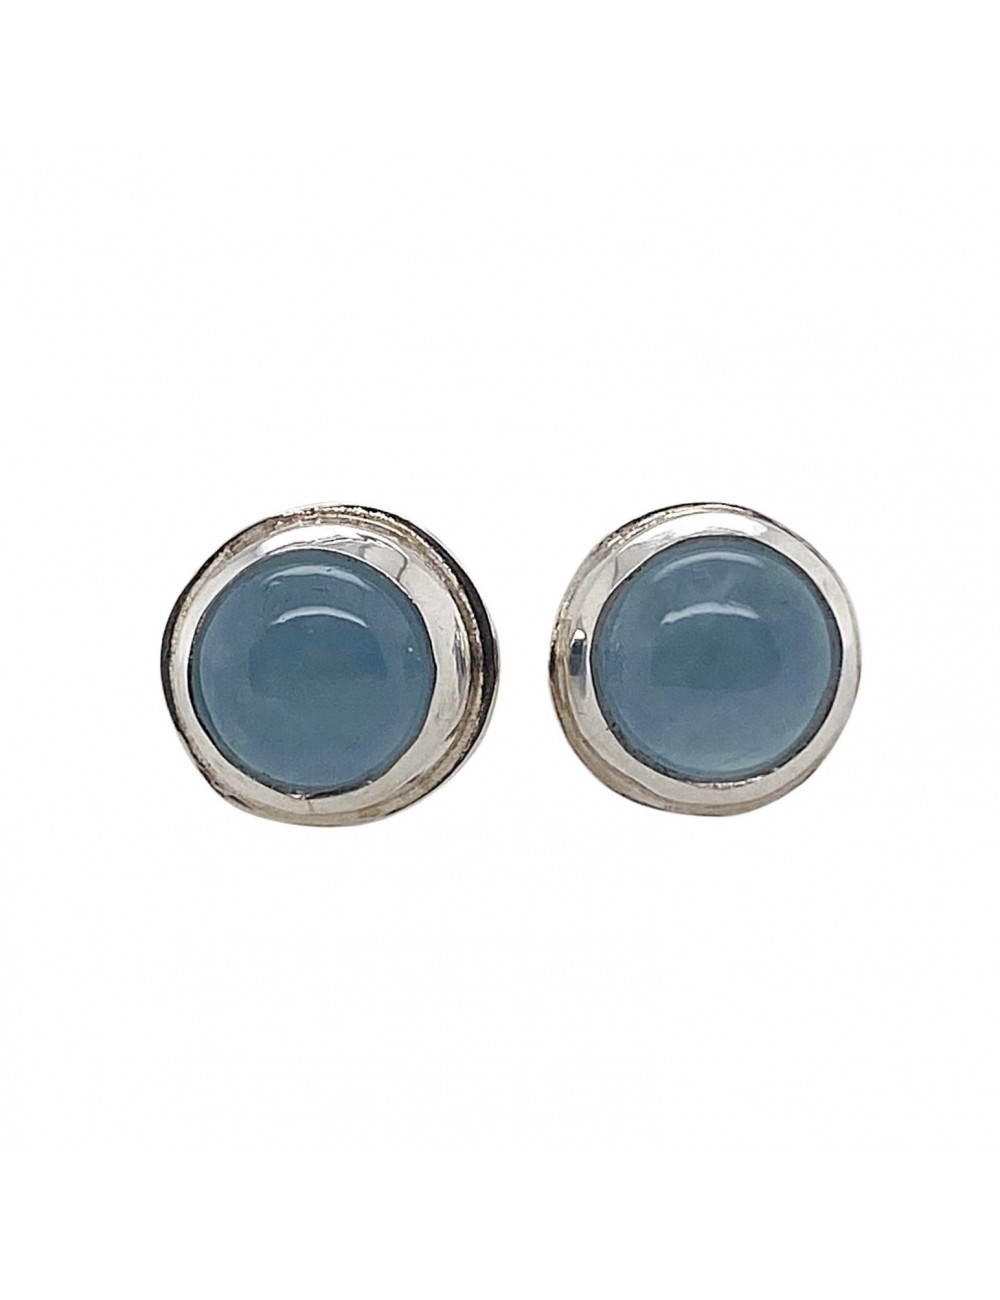 ROUND AQUAMARINE POST EARRINGS